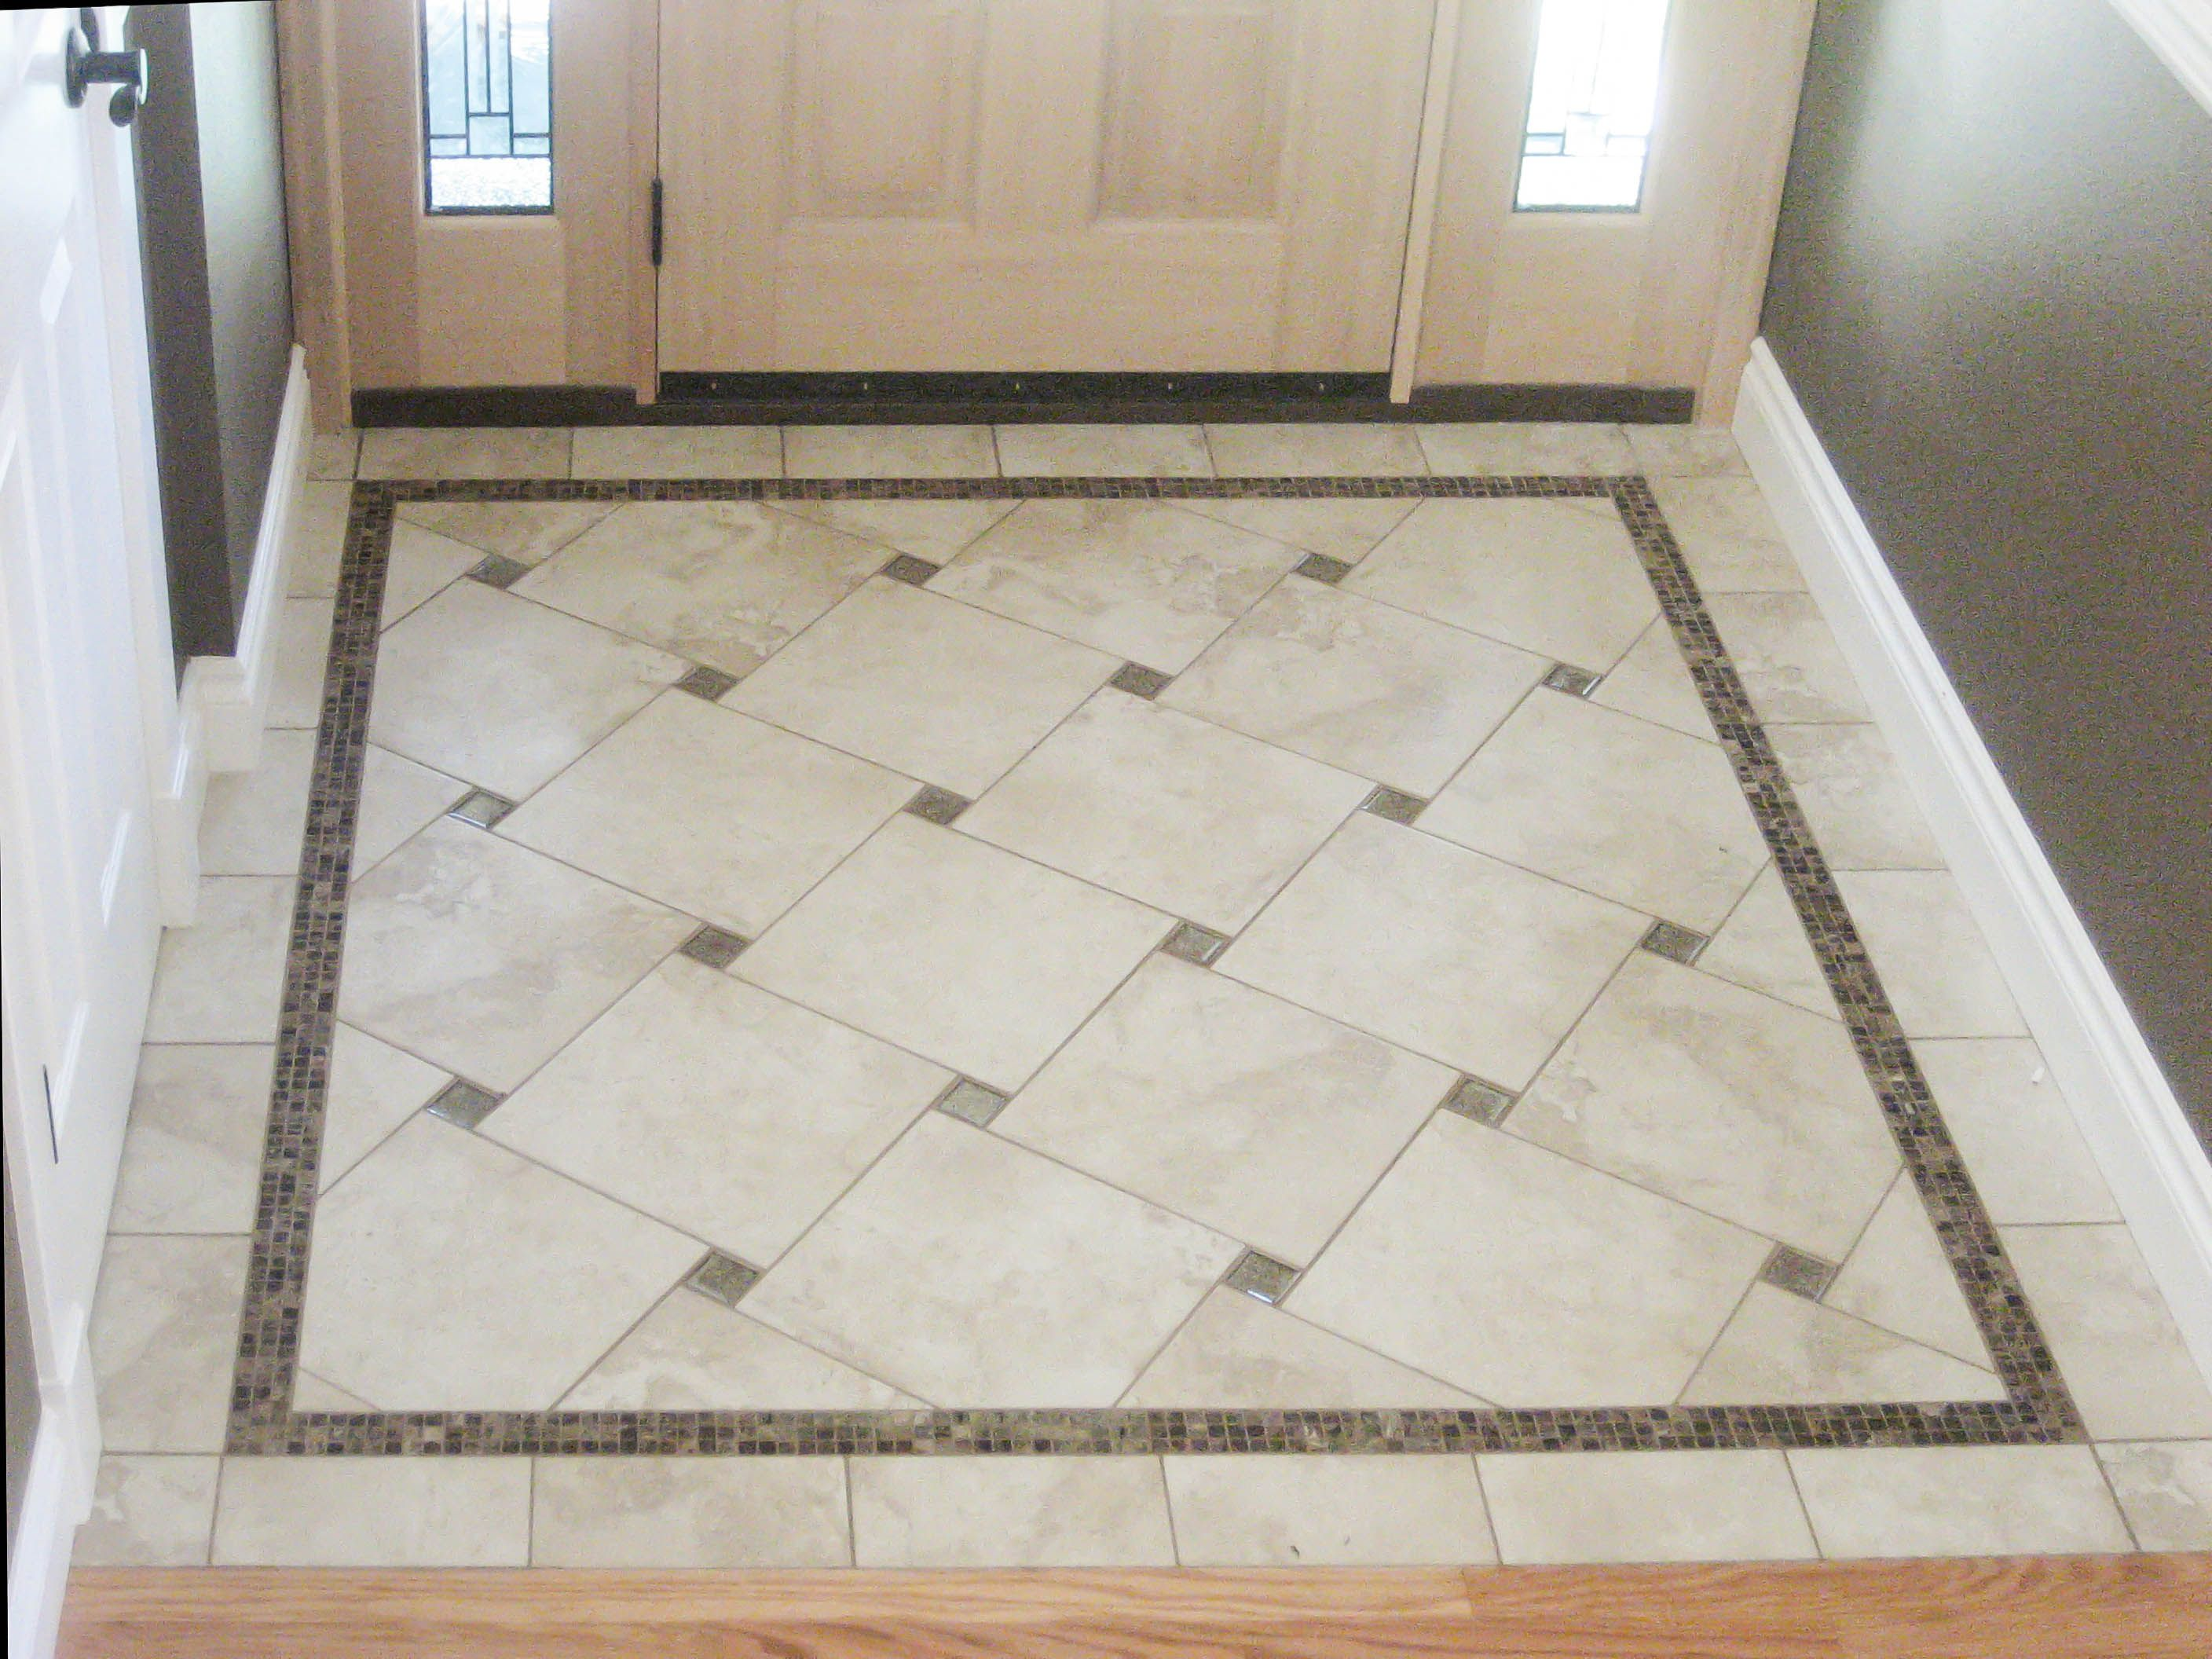 entry floor tile ideas entry floor photos gallery seattle tile contractor irc tile - Floor Tile Design Ideas